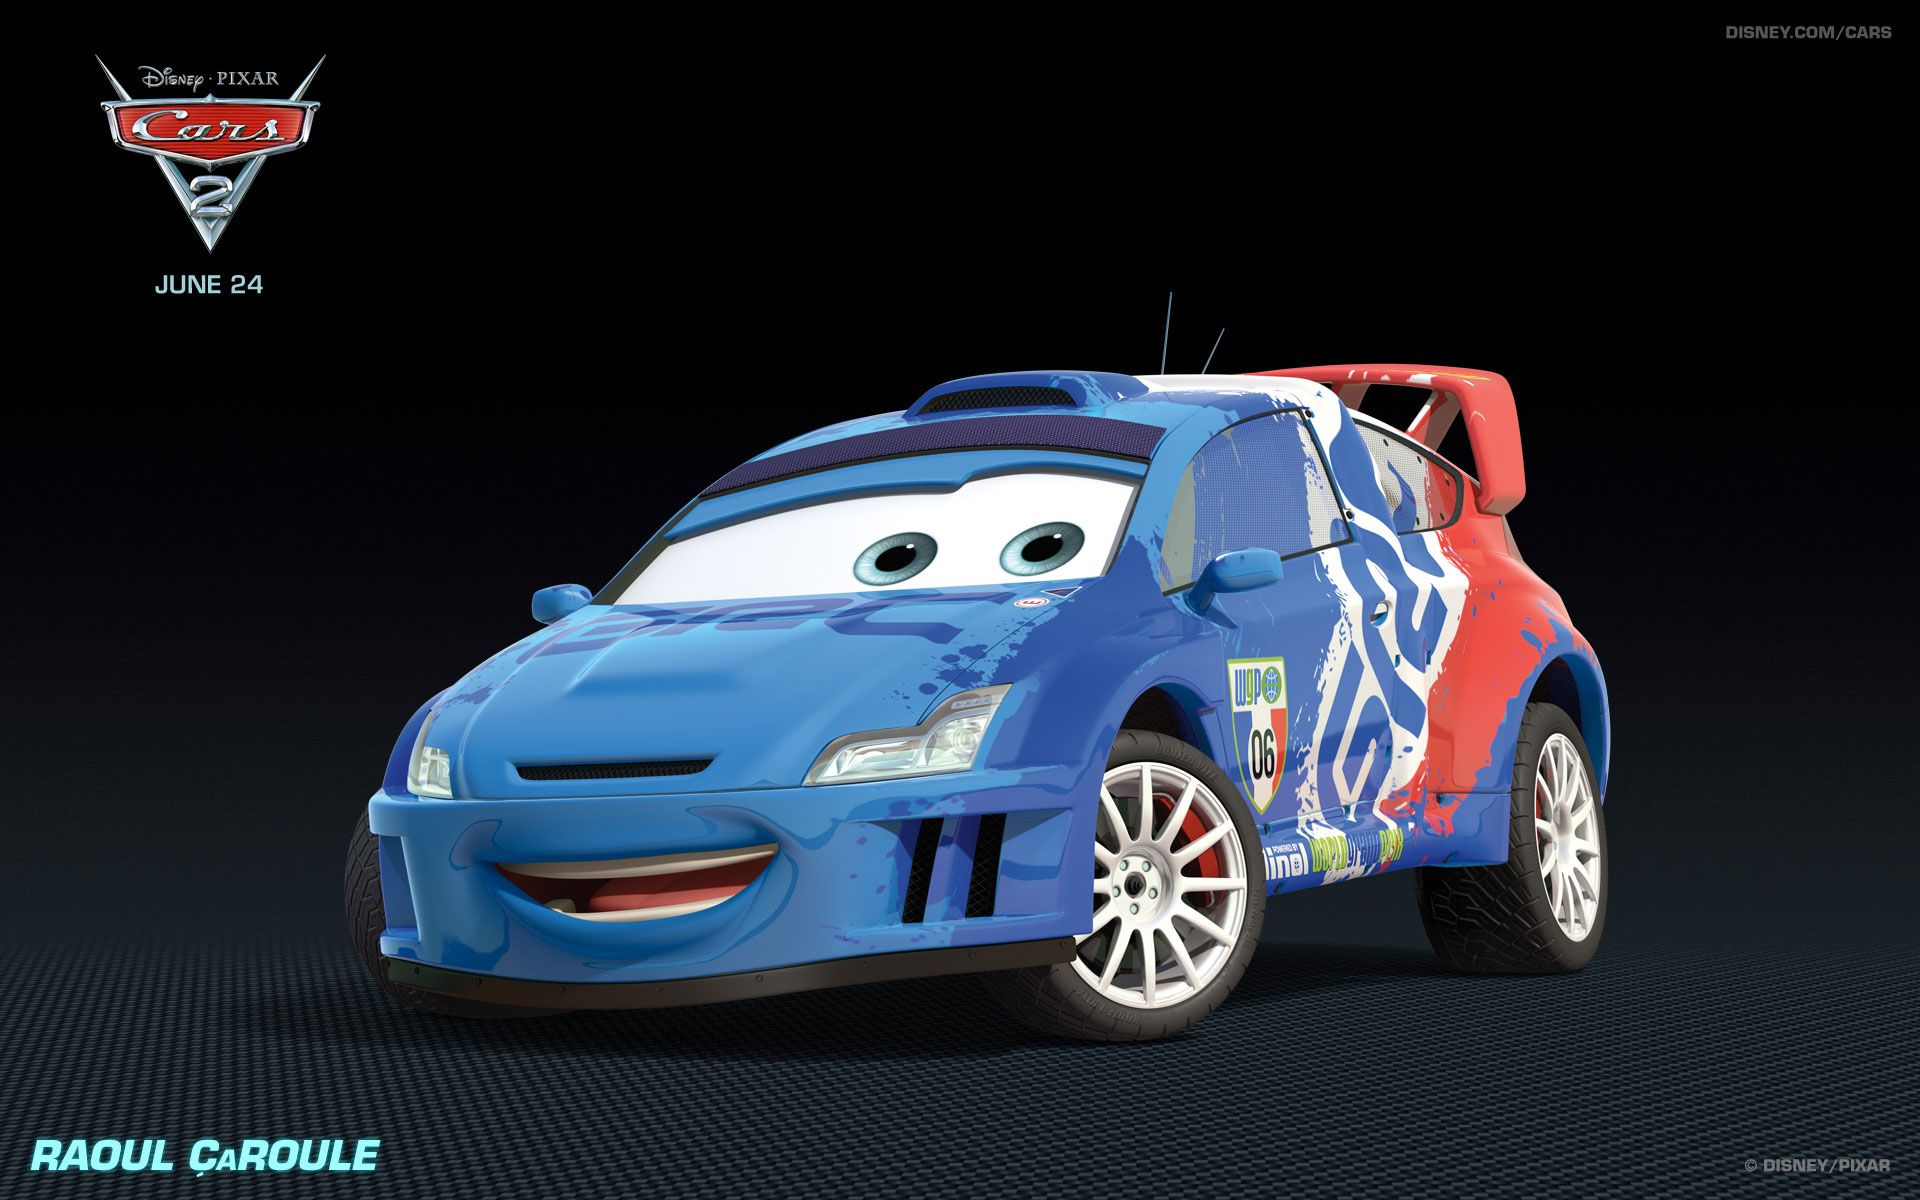 Cars 2 characters characters in disney pixar cars 2 raoul caroule